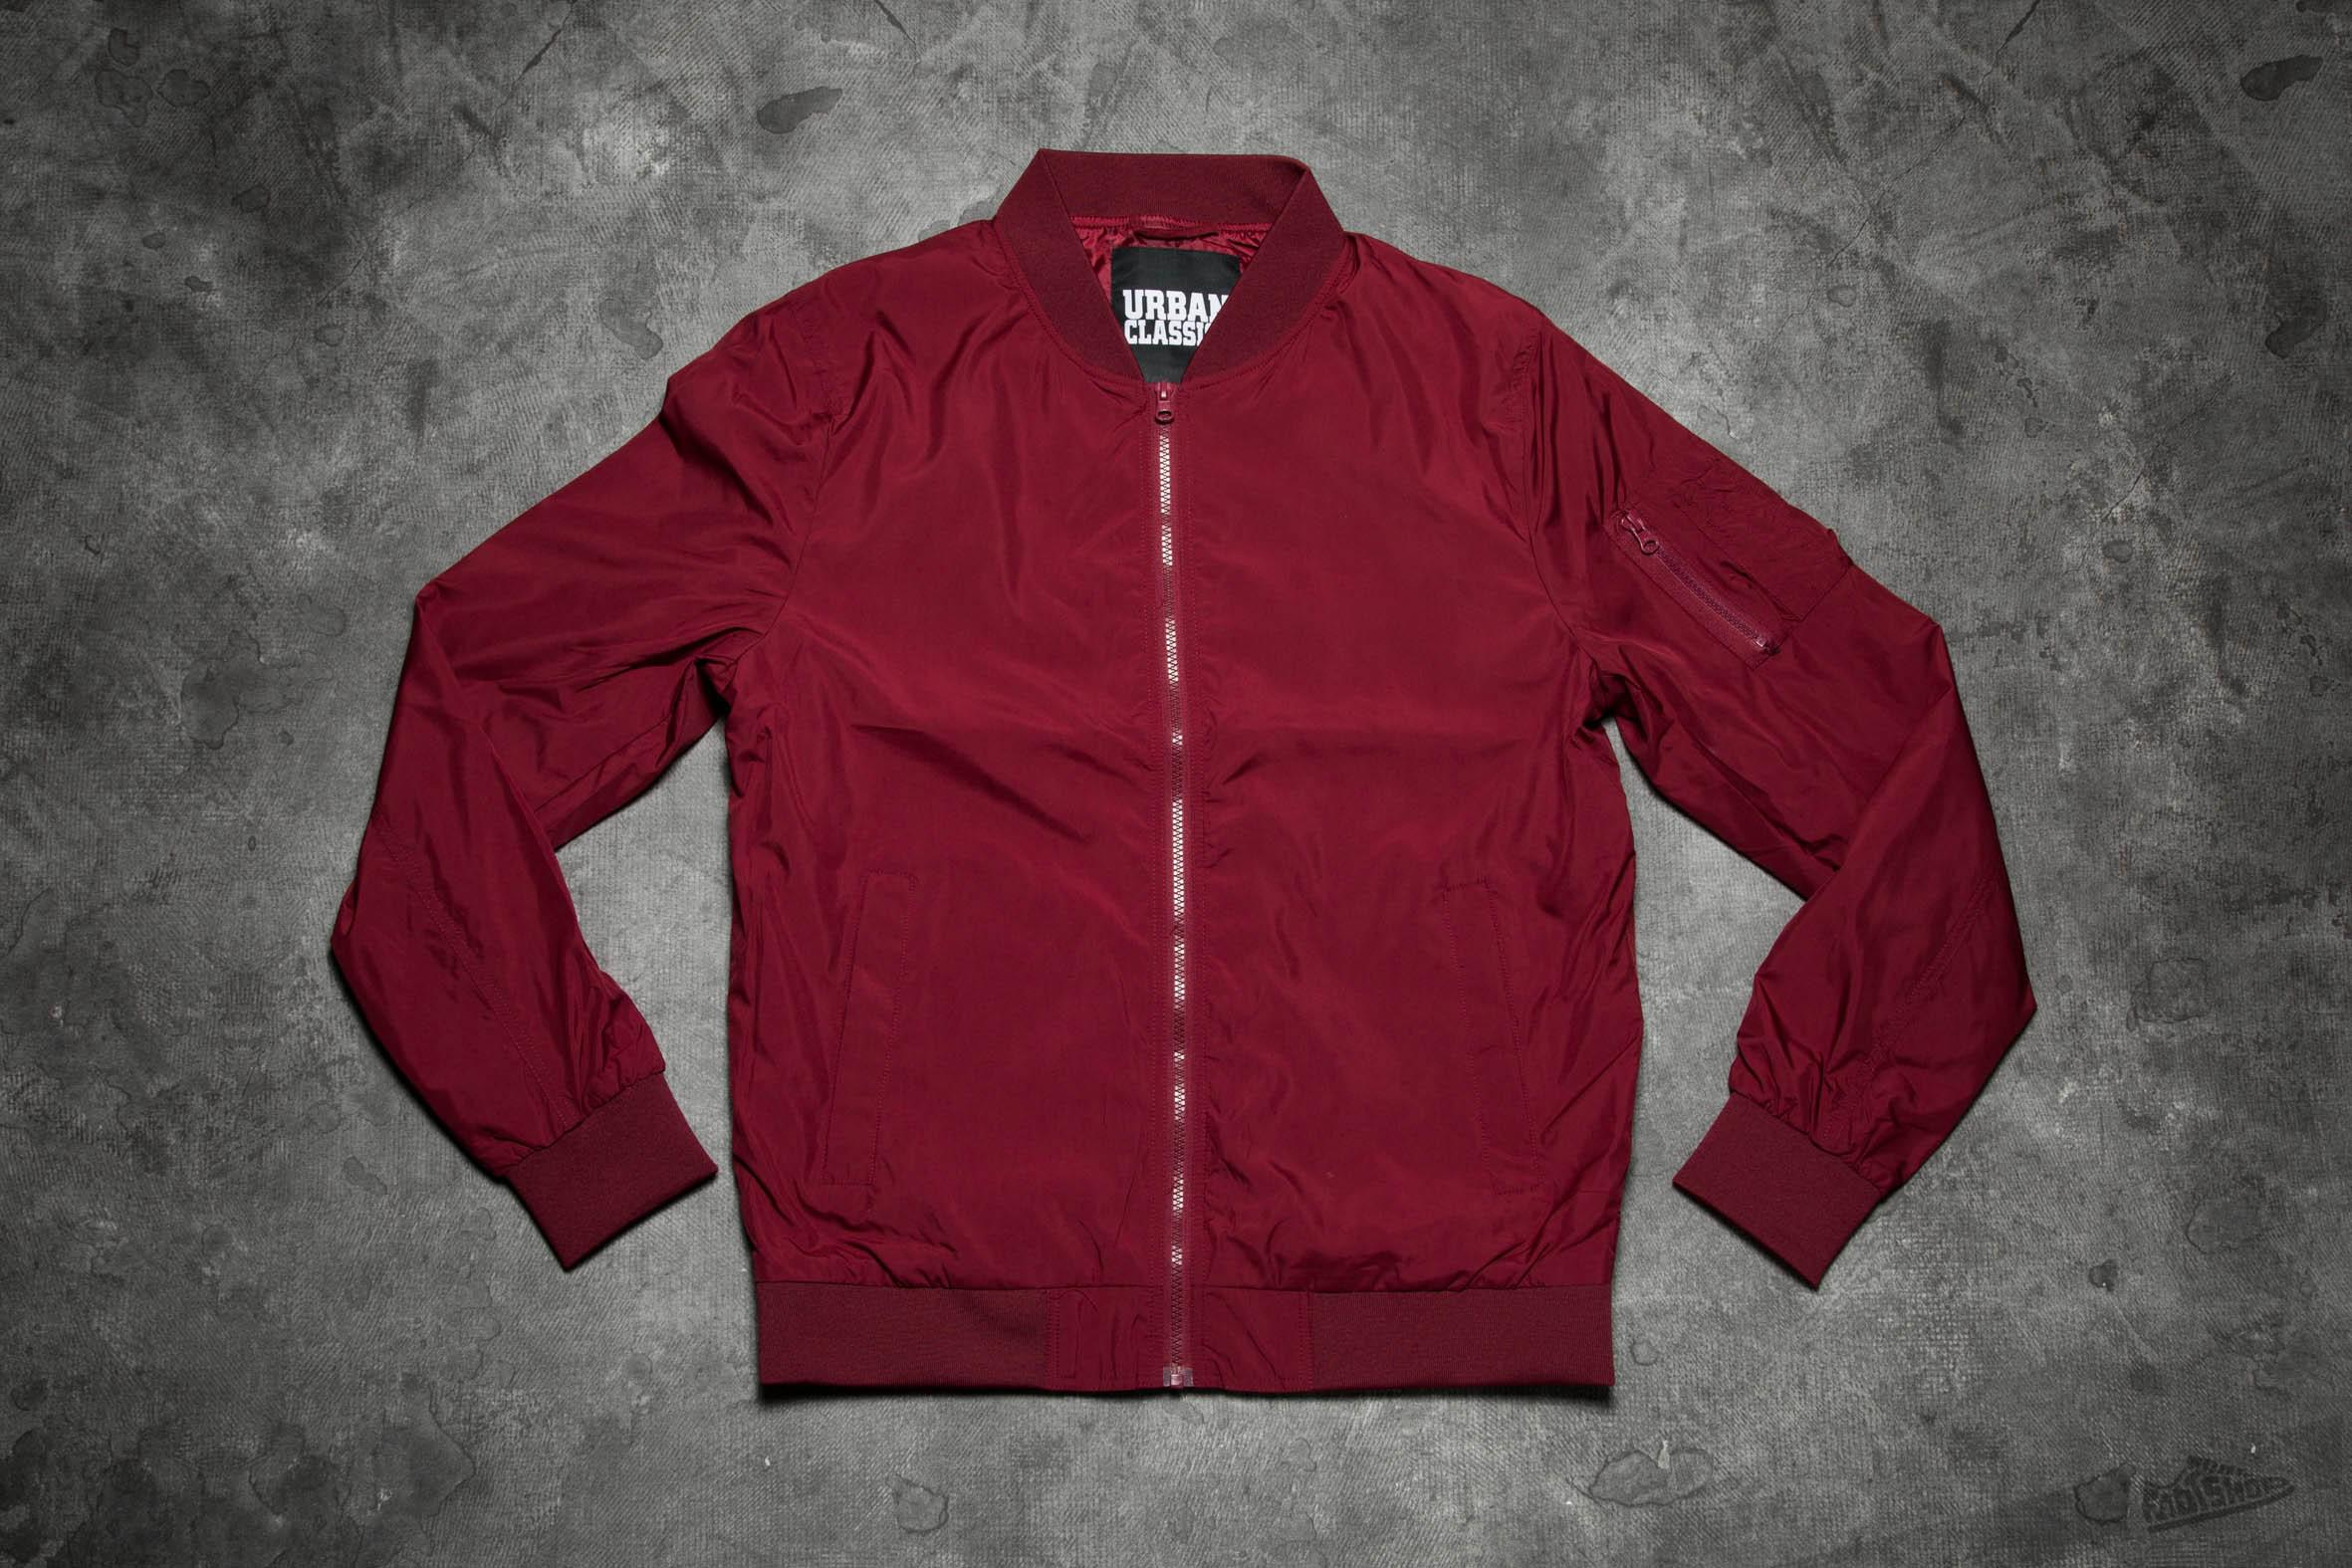 1d183e9f Lyst - Footshop Urban Classics Light Bomber Jacket Burgundy in Red ...